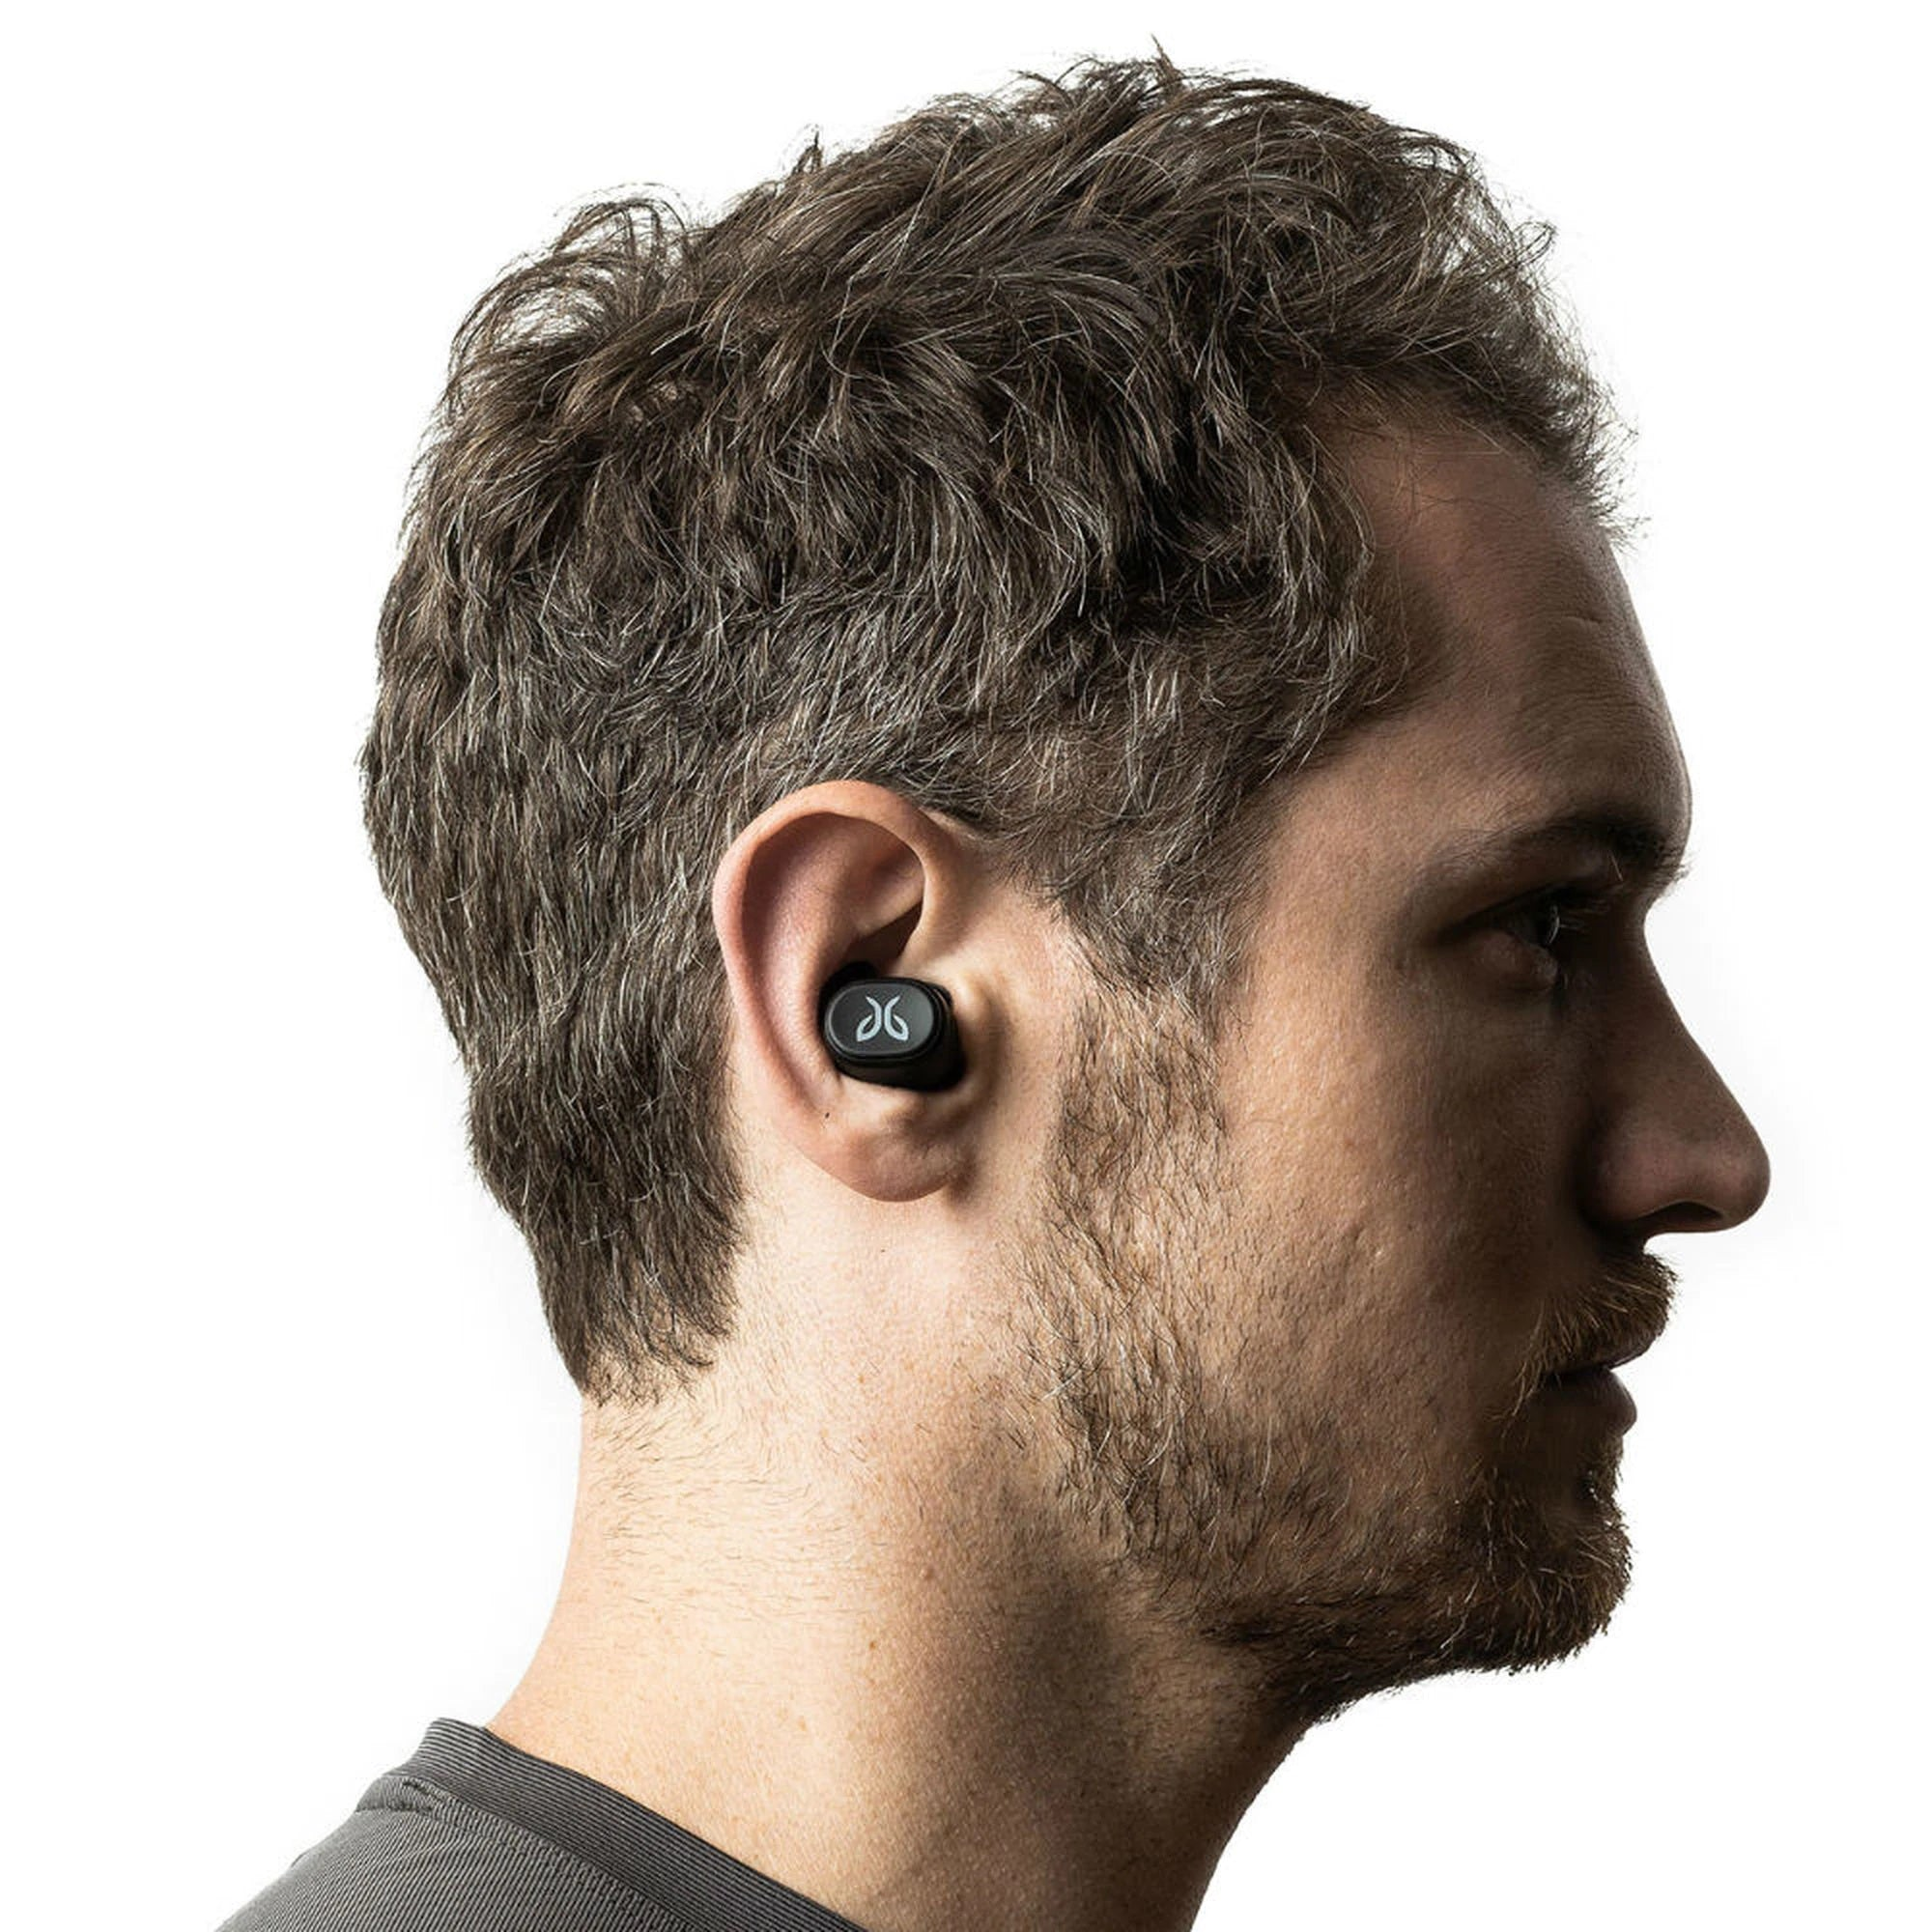 FIT - Locked In Sport Fit: three sizes of interchangeable, silicone eargels ensure a secure, ultra-comfortable fit that feels weightless in your ears during intense activity.